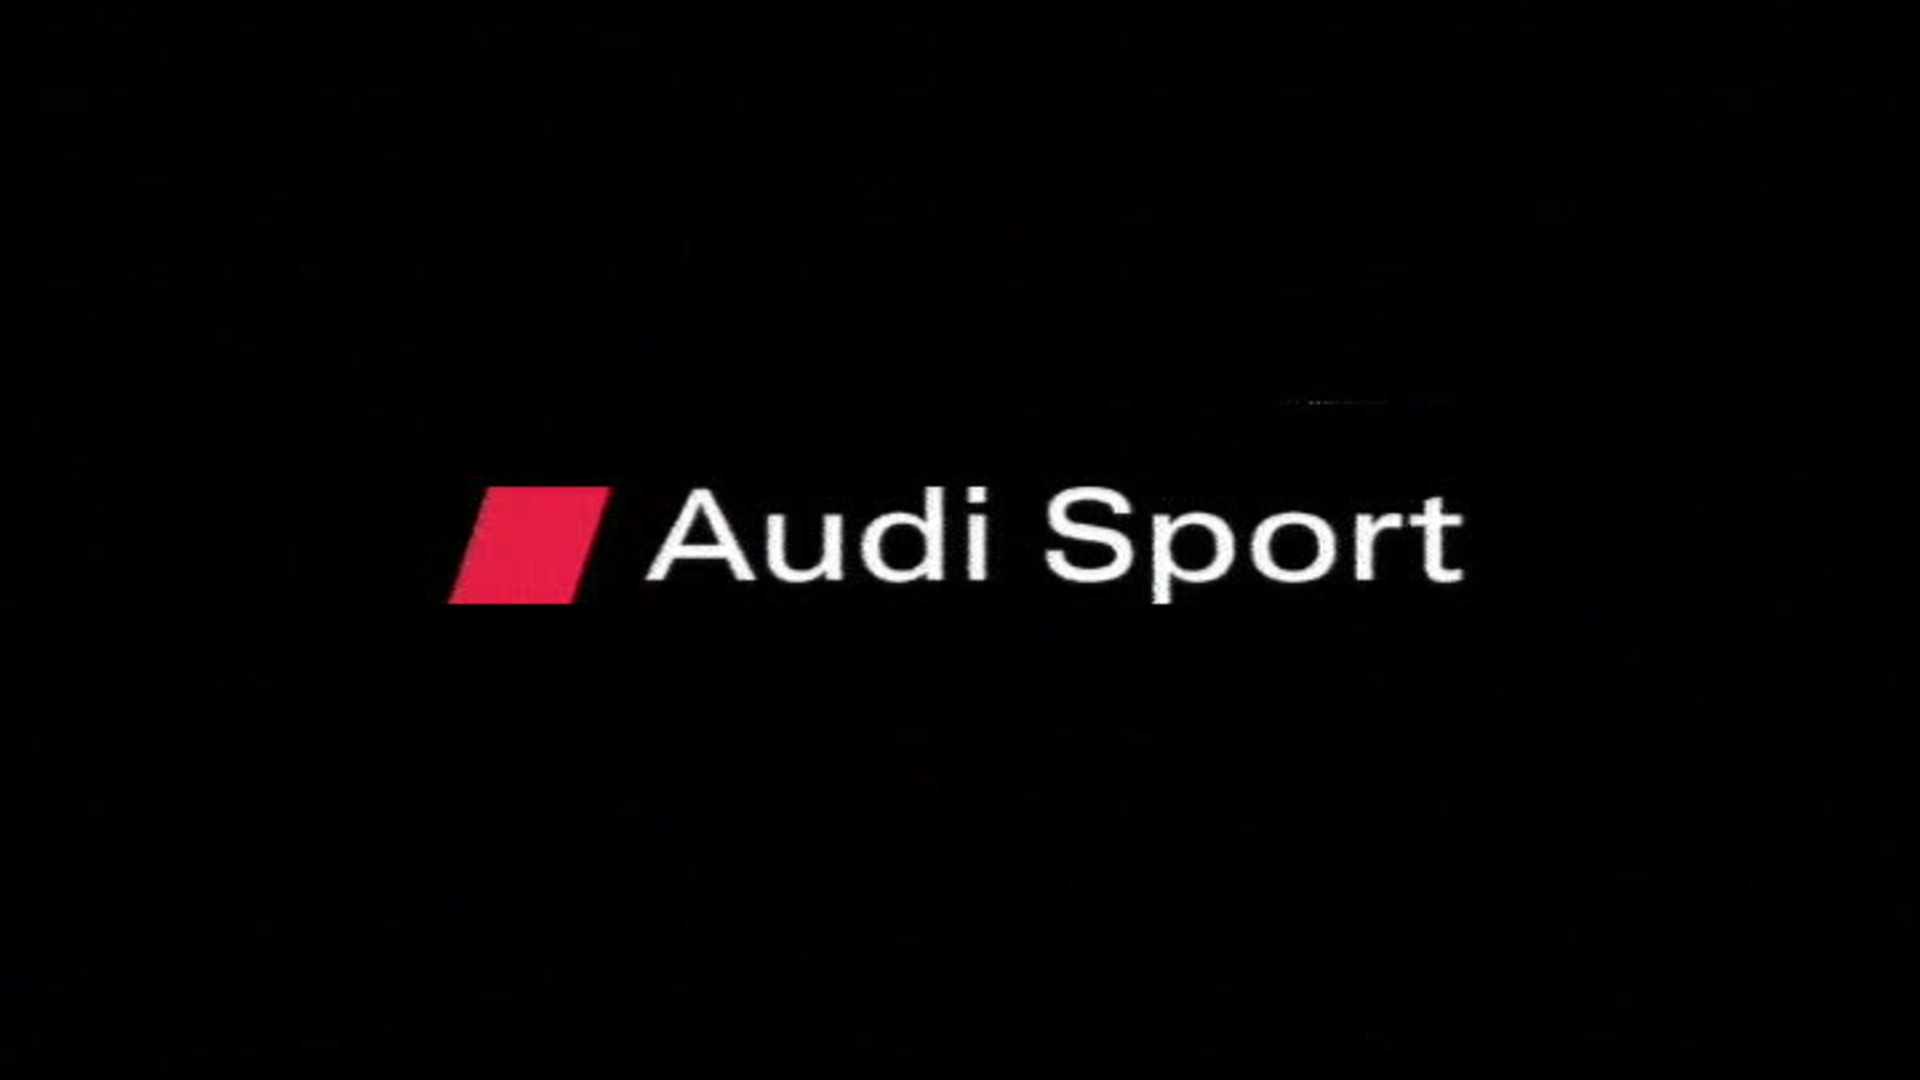 Audi R10 TDI – Development of engine and chassis